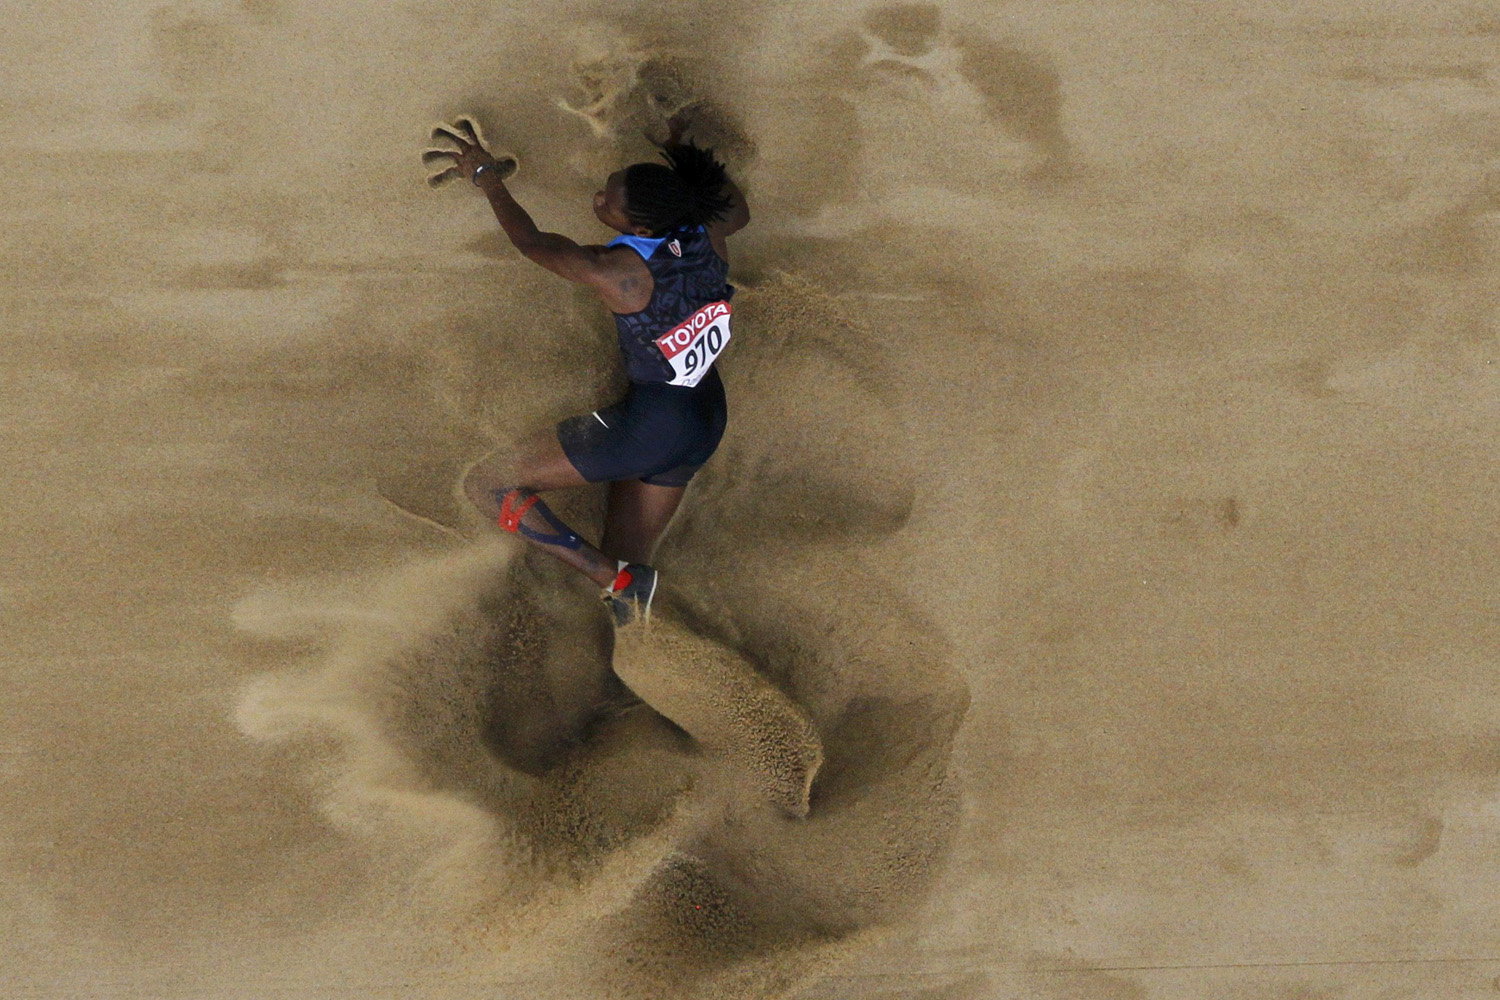 August 28, 2011. Brittney Reese of the U.S. competes during the women's long jump final at the IAAF World Championships in Daegu, South Korea.